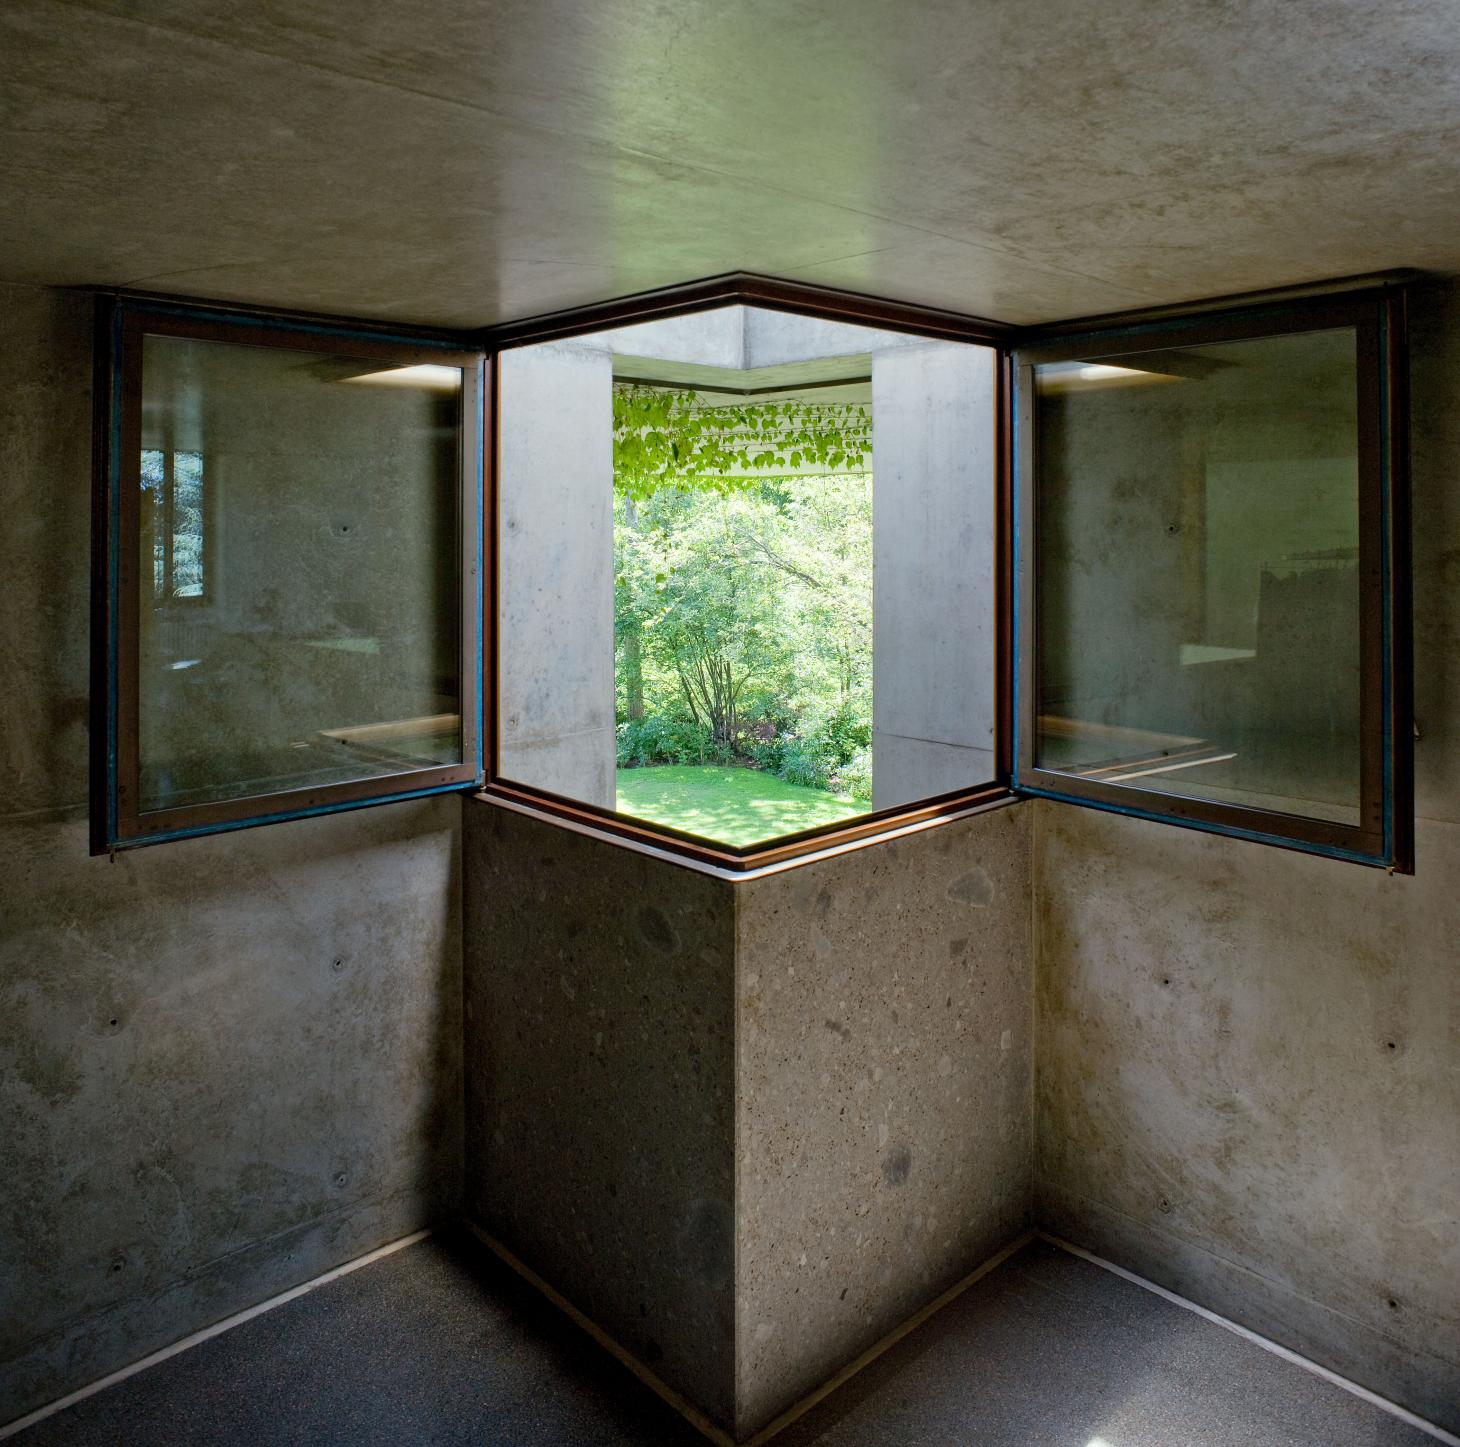 First floor window at Casa Molteni, by Tobia Scarpa